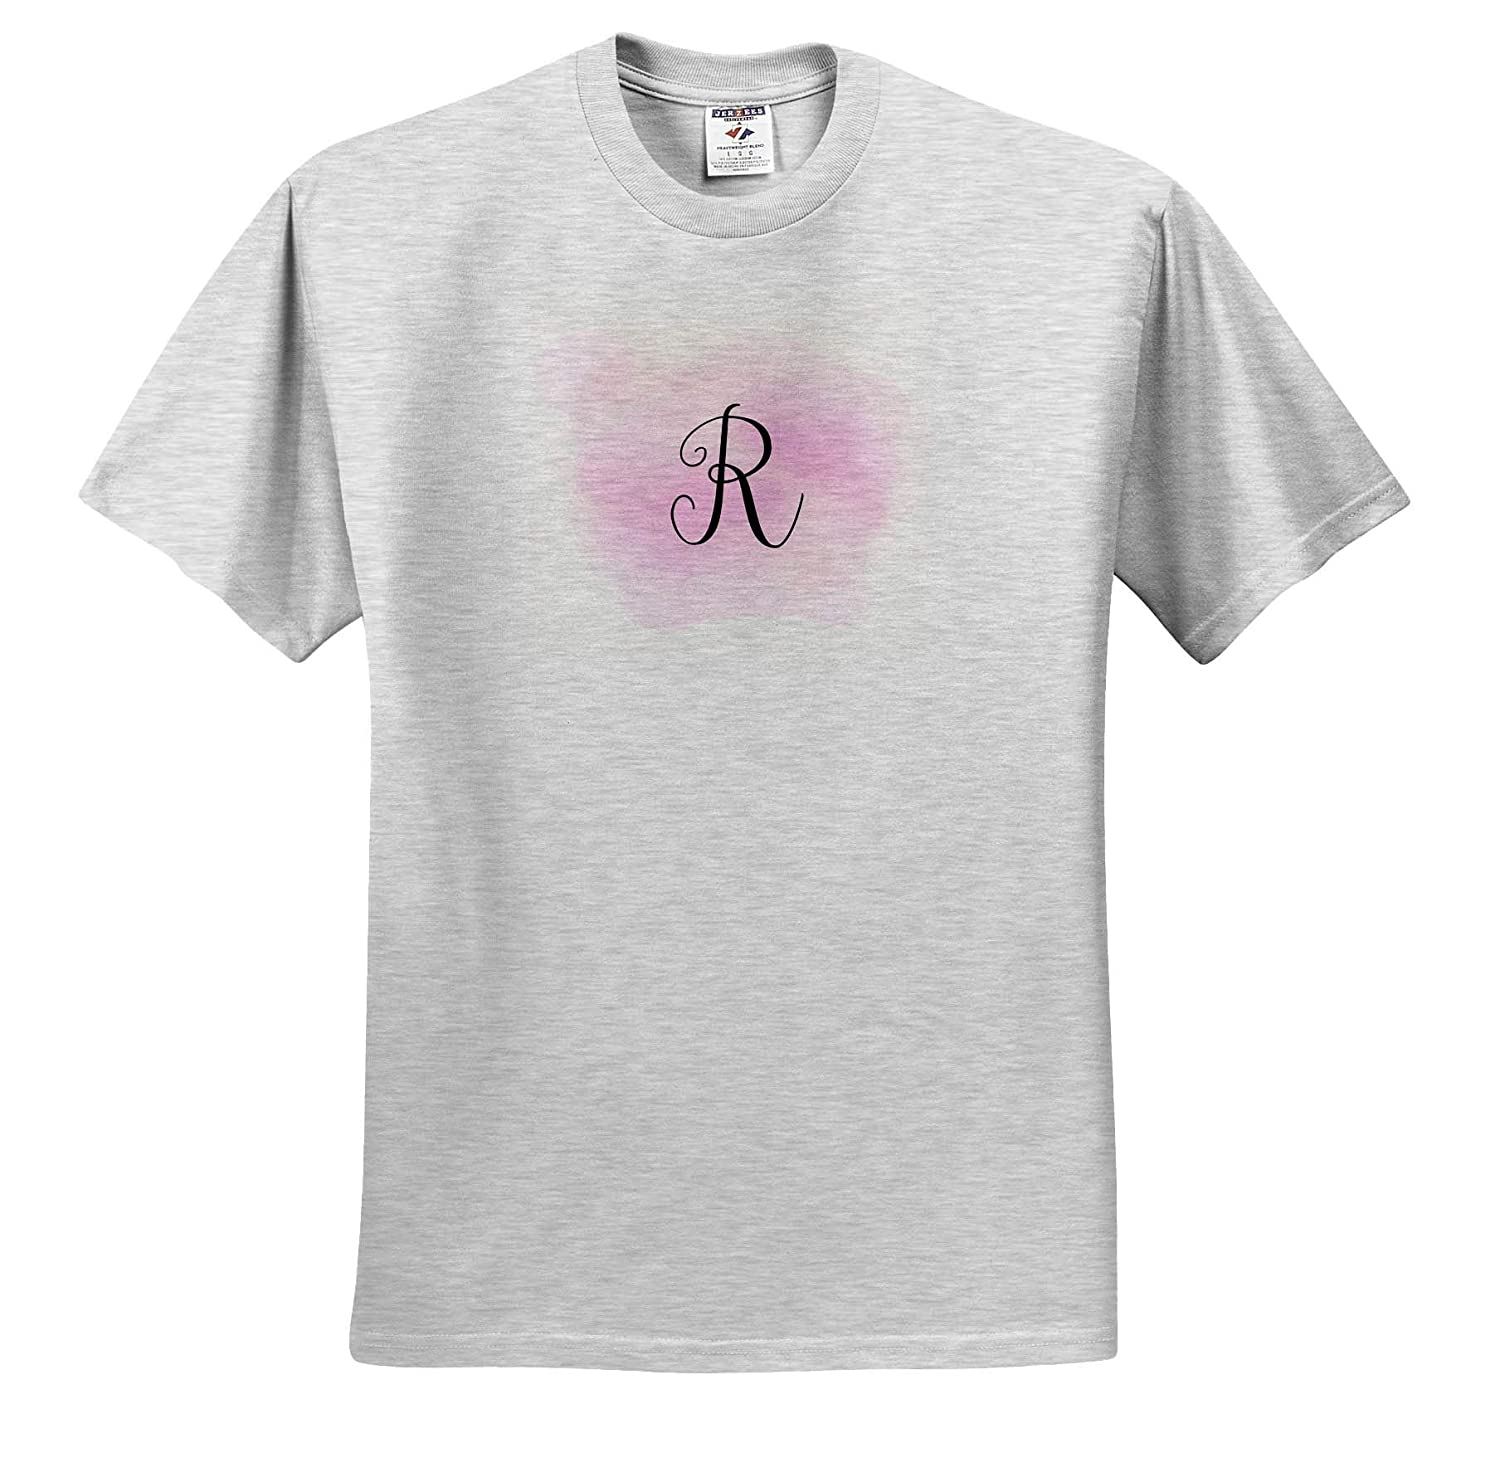 Monogram Image of Pink Watercolor R Monogram 3dRose Gabriella B T-Shirts